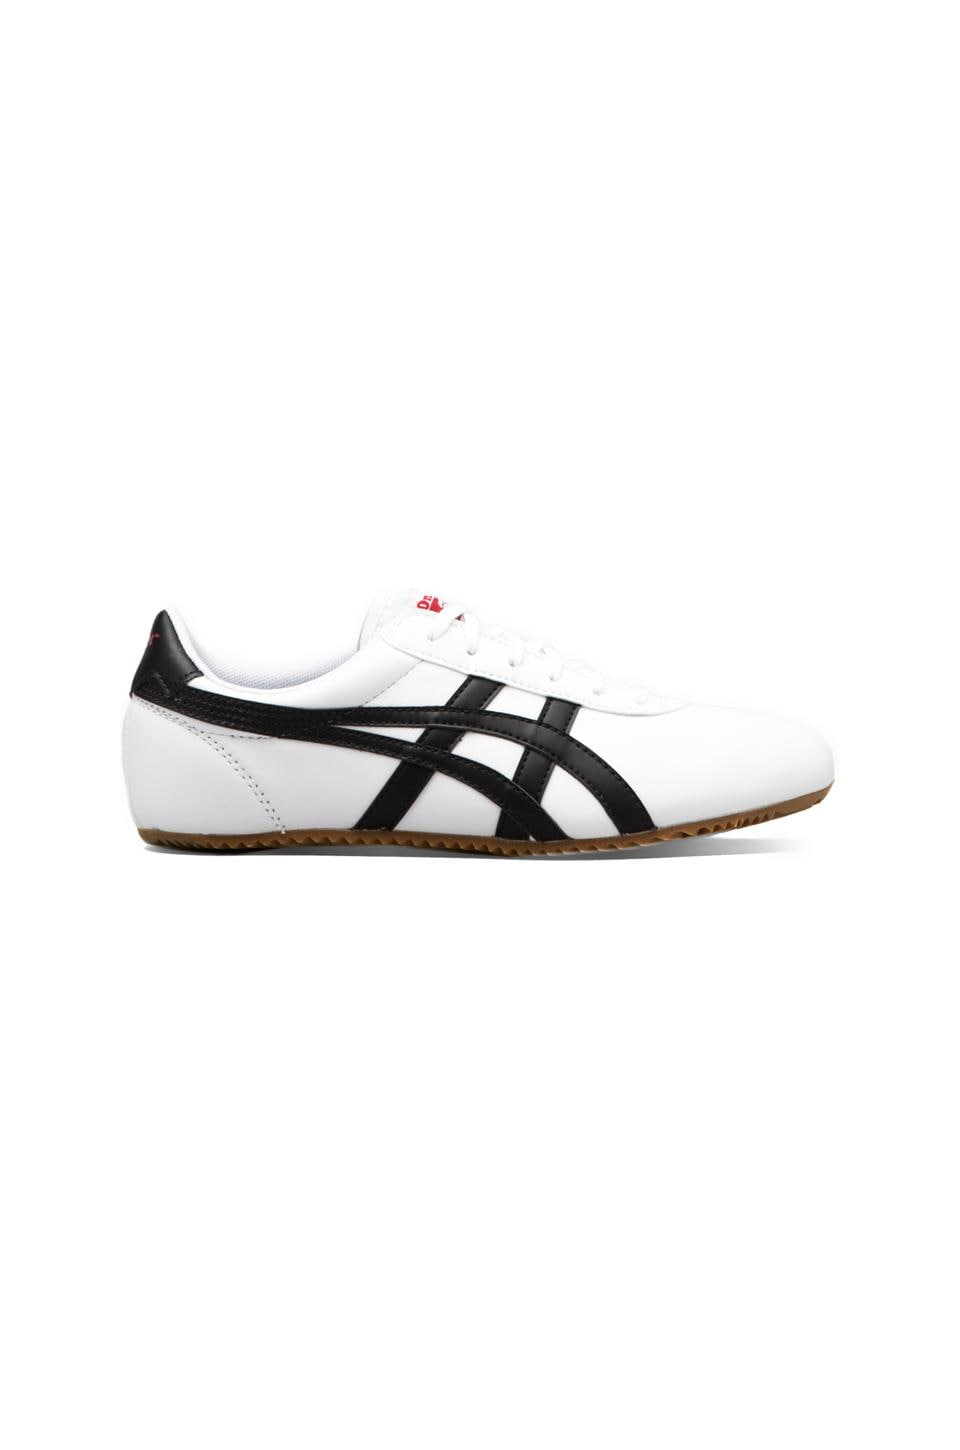 Onitsuka Tiger Tai Chi Le in White/Black